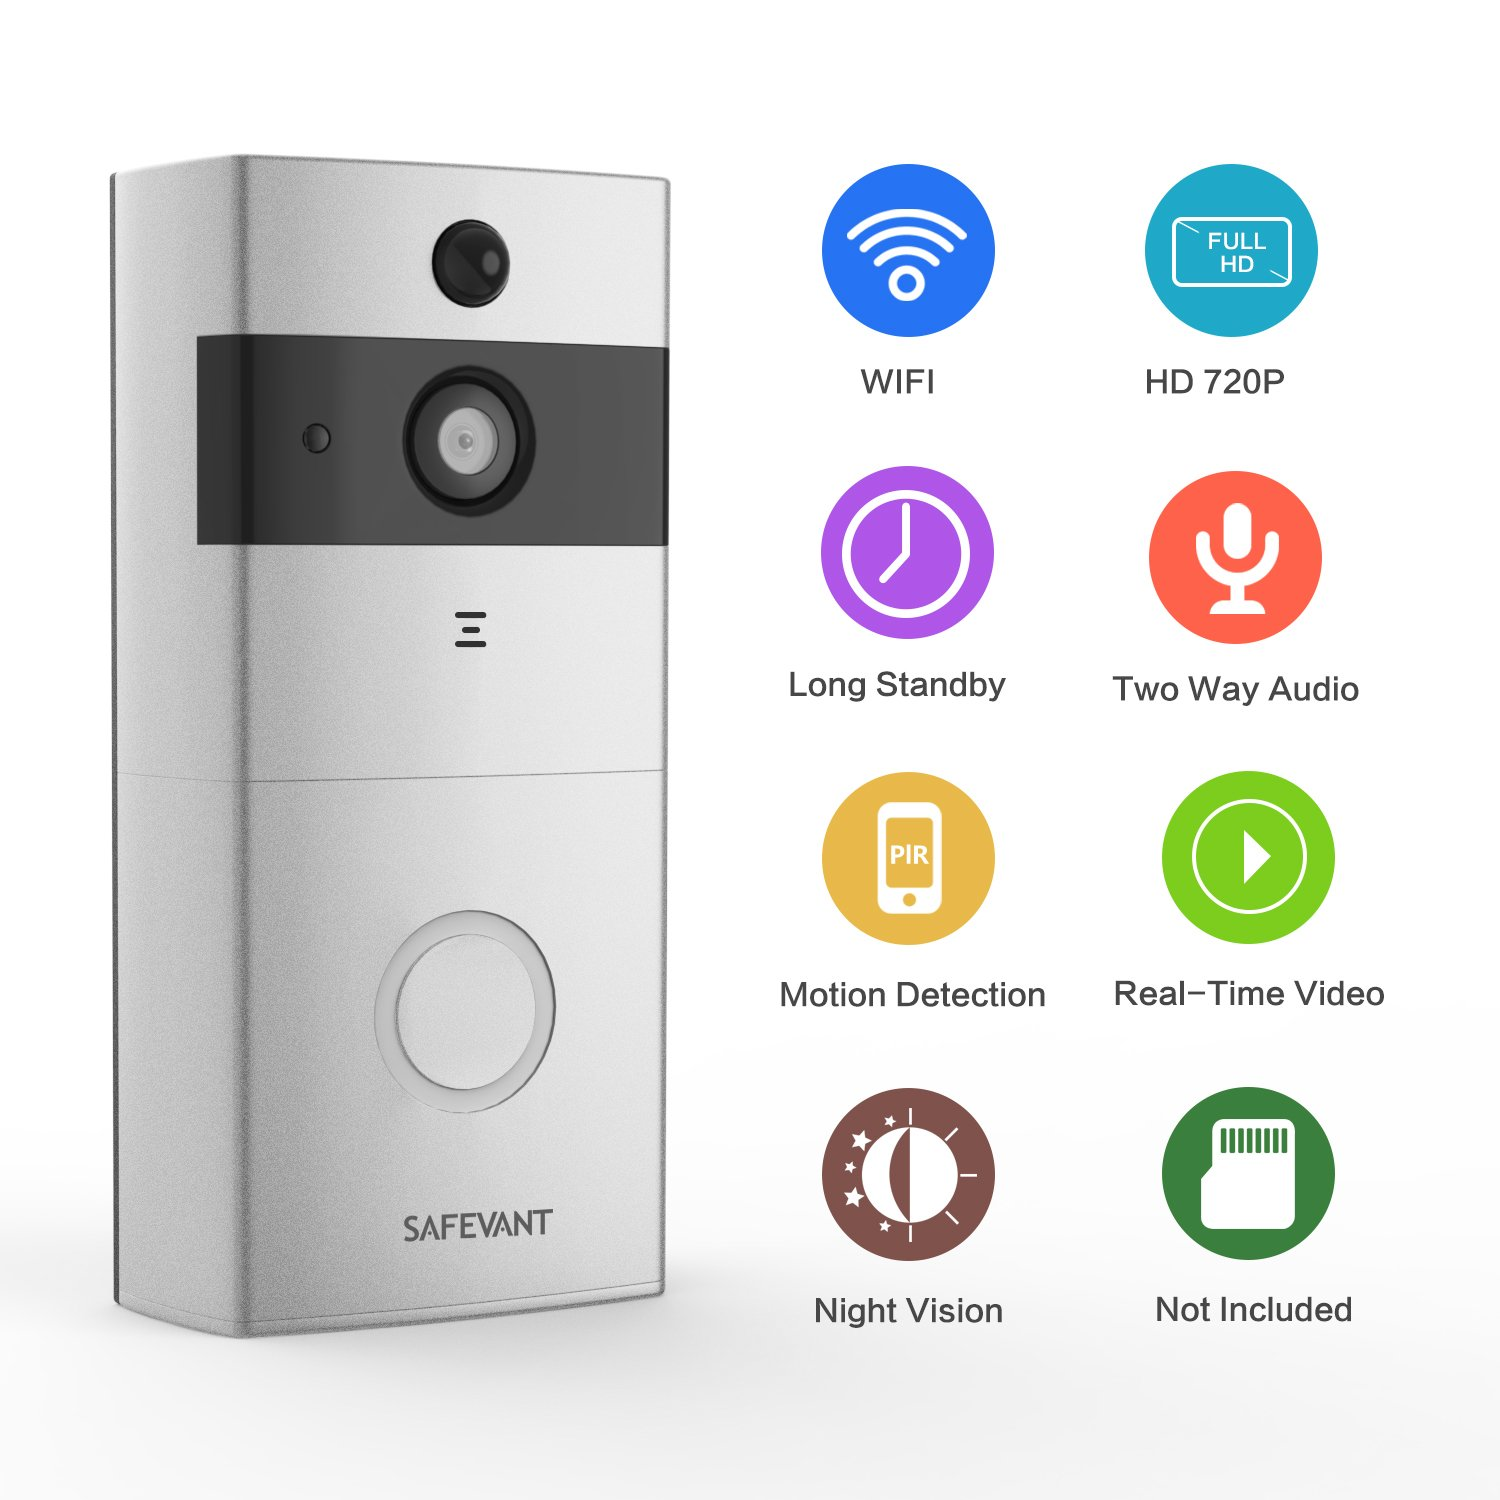 [2018 Newest] Video Doorbell,Safevant Doorbell Wireless with PIR Motion Detection,720P Doorbell Camera, Real-Time Video and Two-Way Talk,Night Vision,Phone Ring,Free APP,Only Supprt 2.4GHZ,Sliver